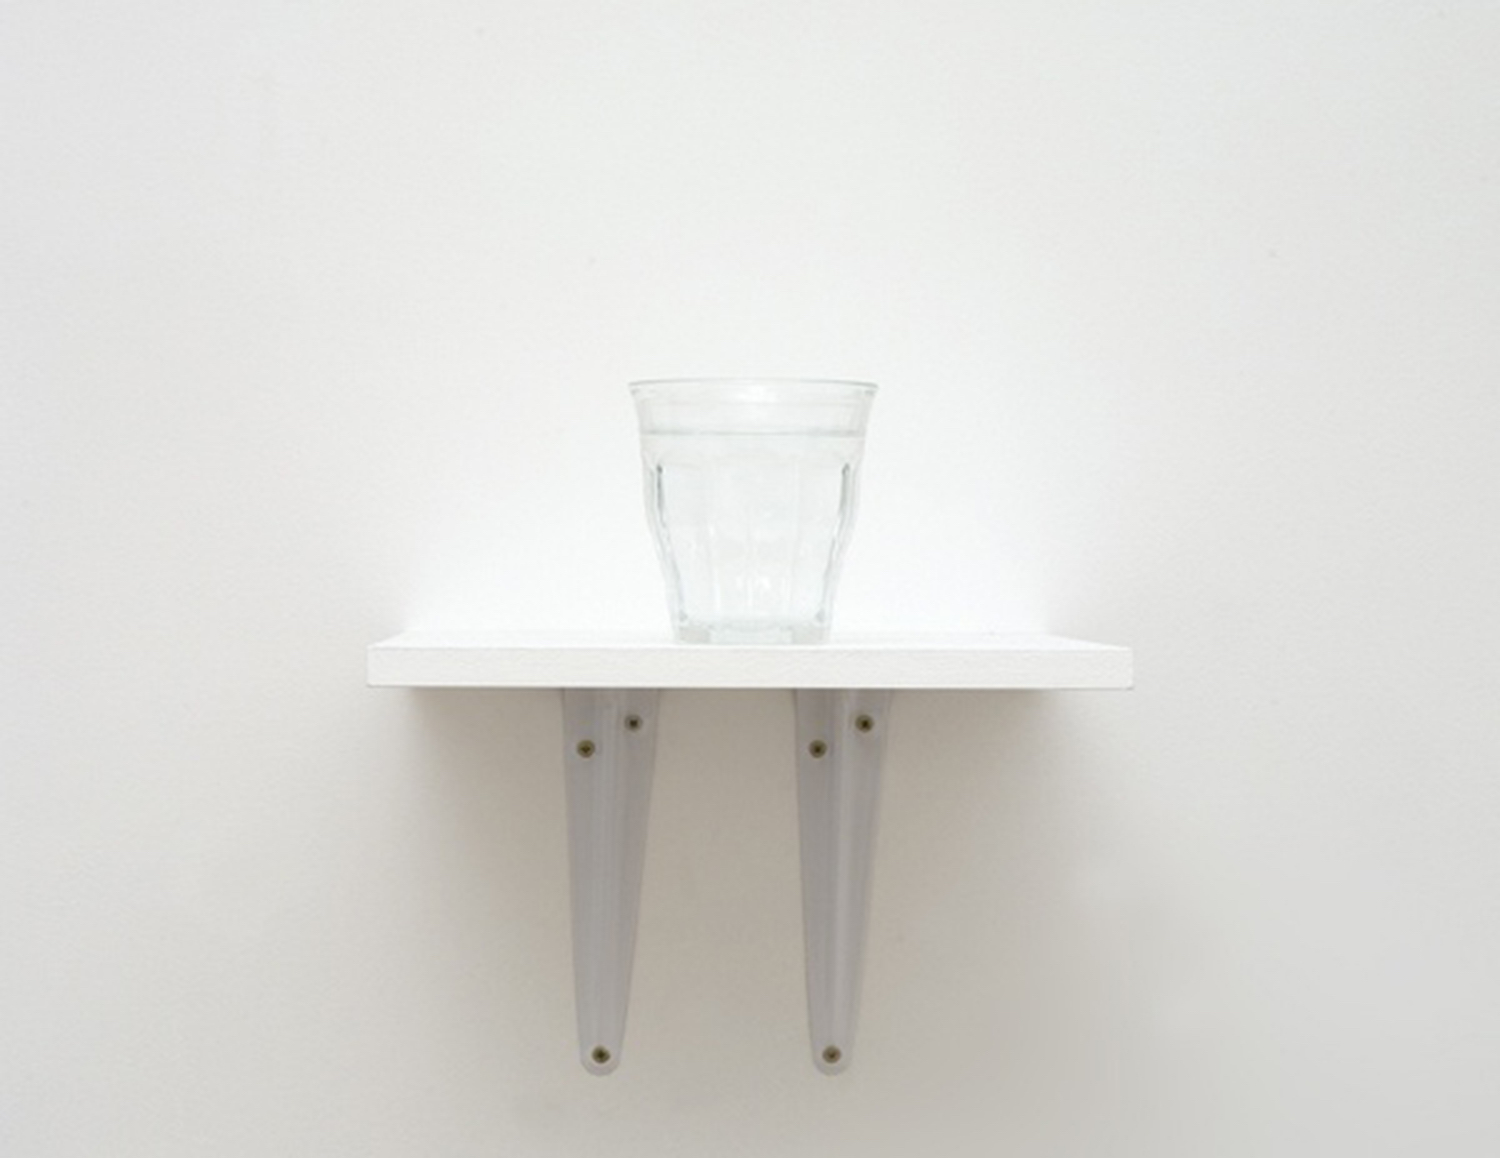 Drink europa 2013 Drinking glass, water (an equal mix of 28 mineral waters, from the 28 European countries), wooden shelf 21 x 25 x 7 cm 3 + 2AP